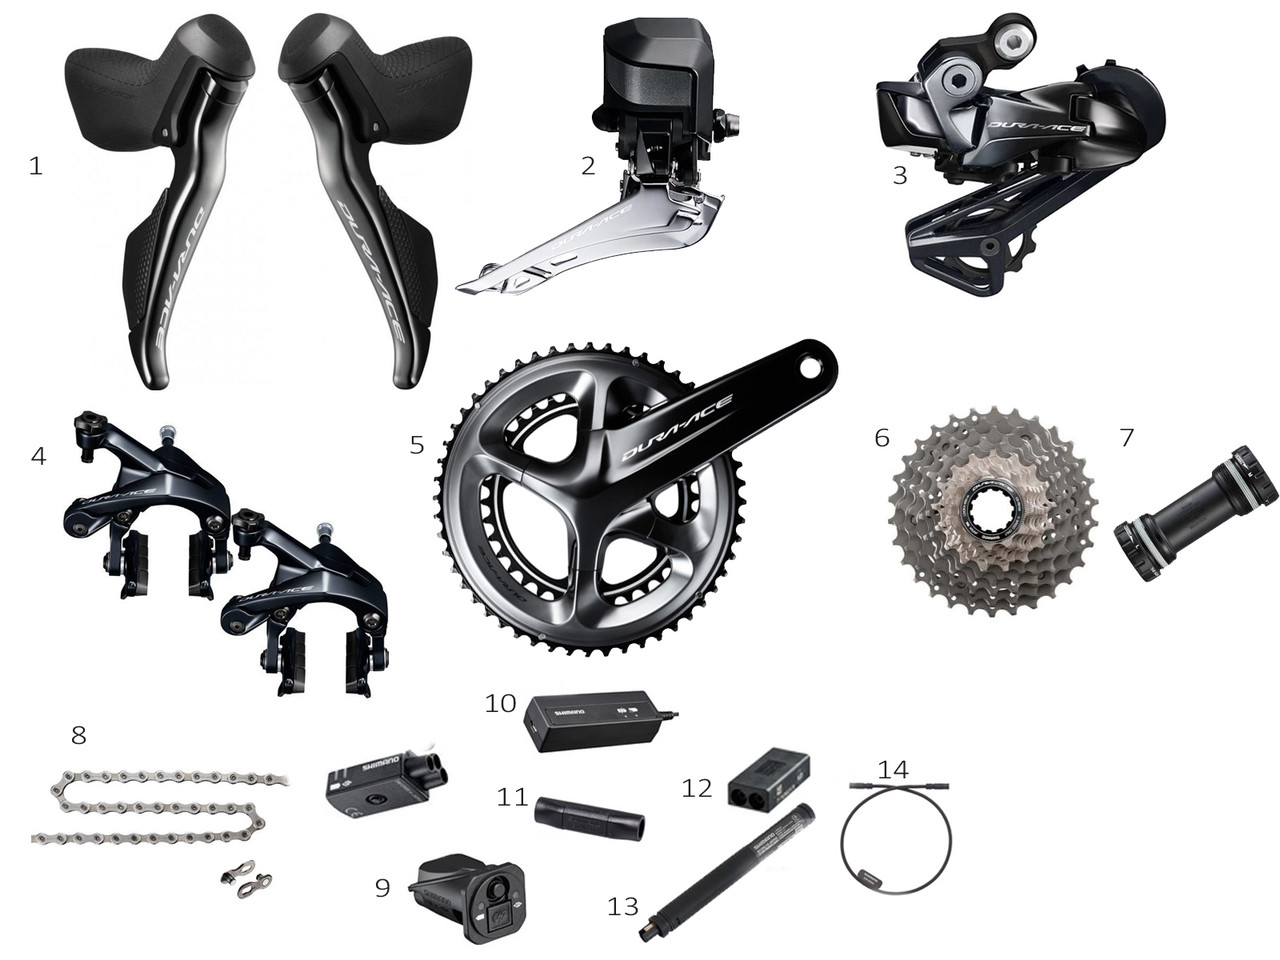 beae5040795 Shimano Dura-Ace R9150 Di2 Groupset - Glory Cycles